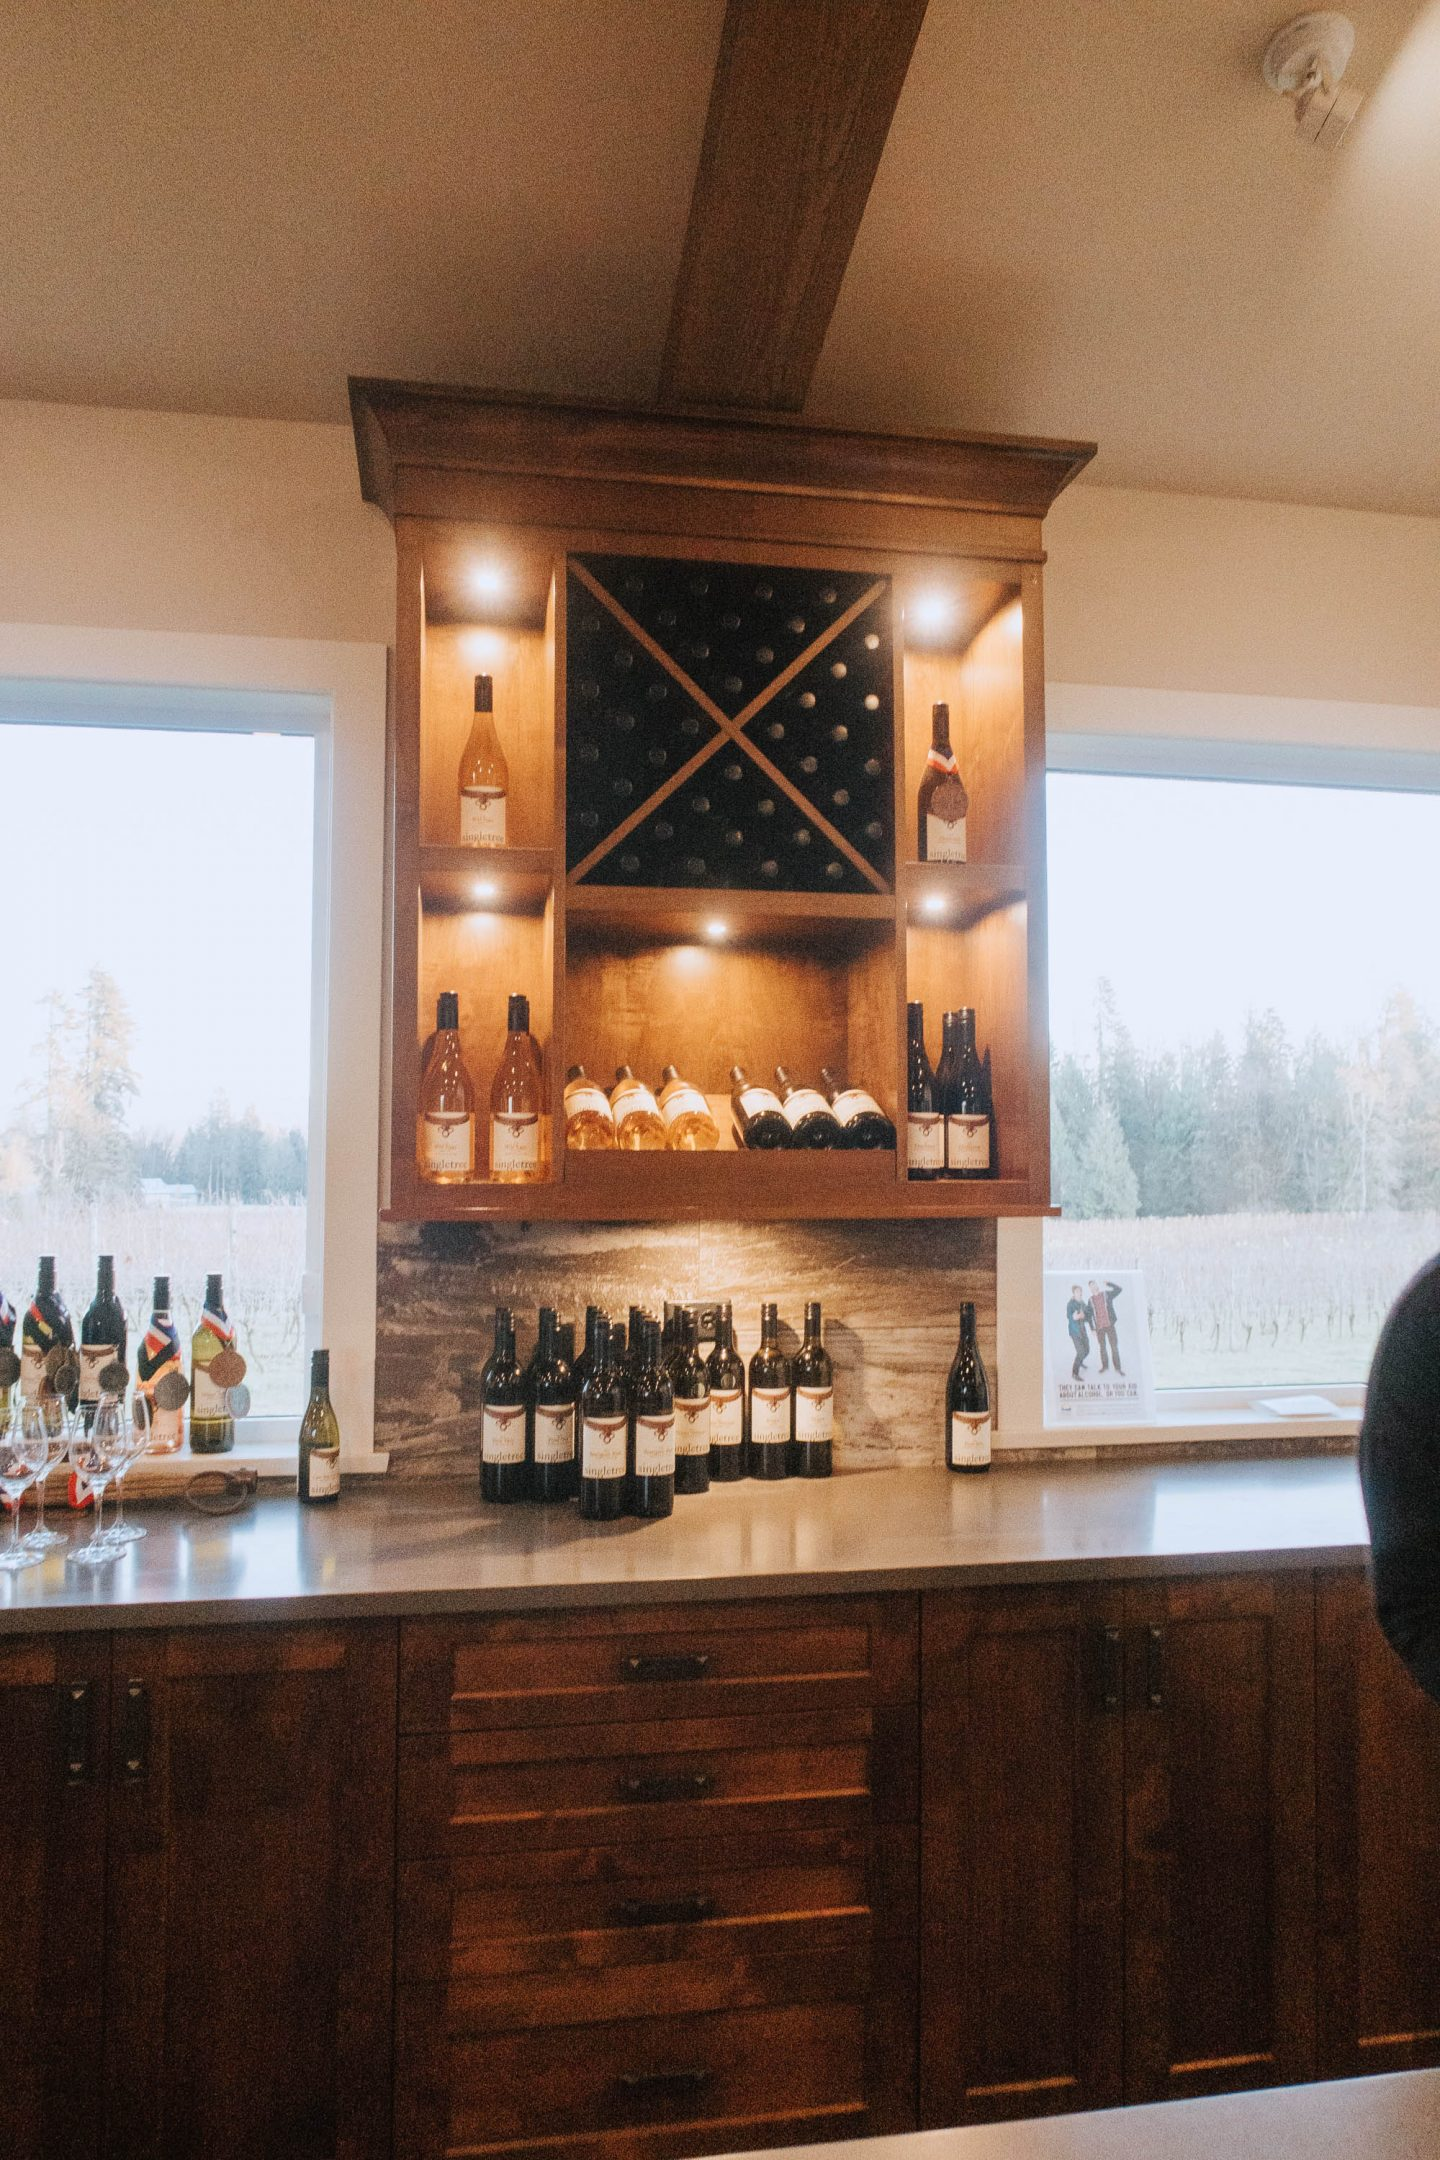 Wine display at Singletree Winery in Abbotsford